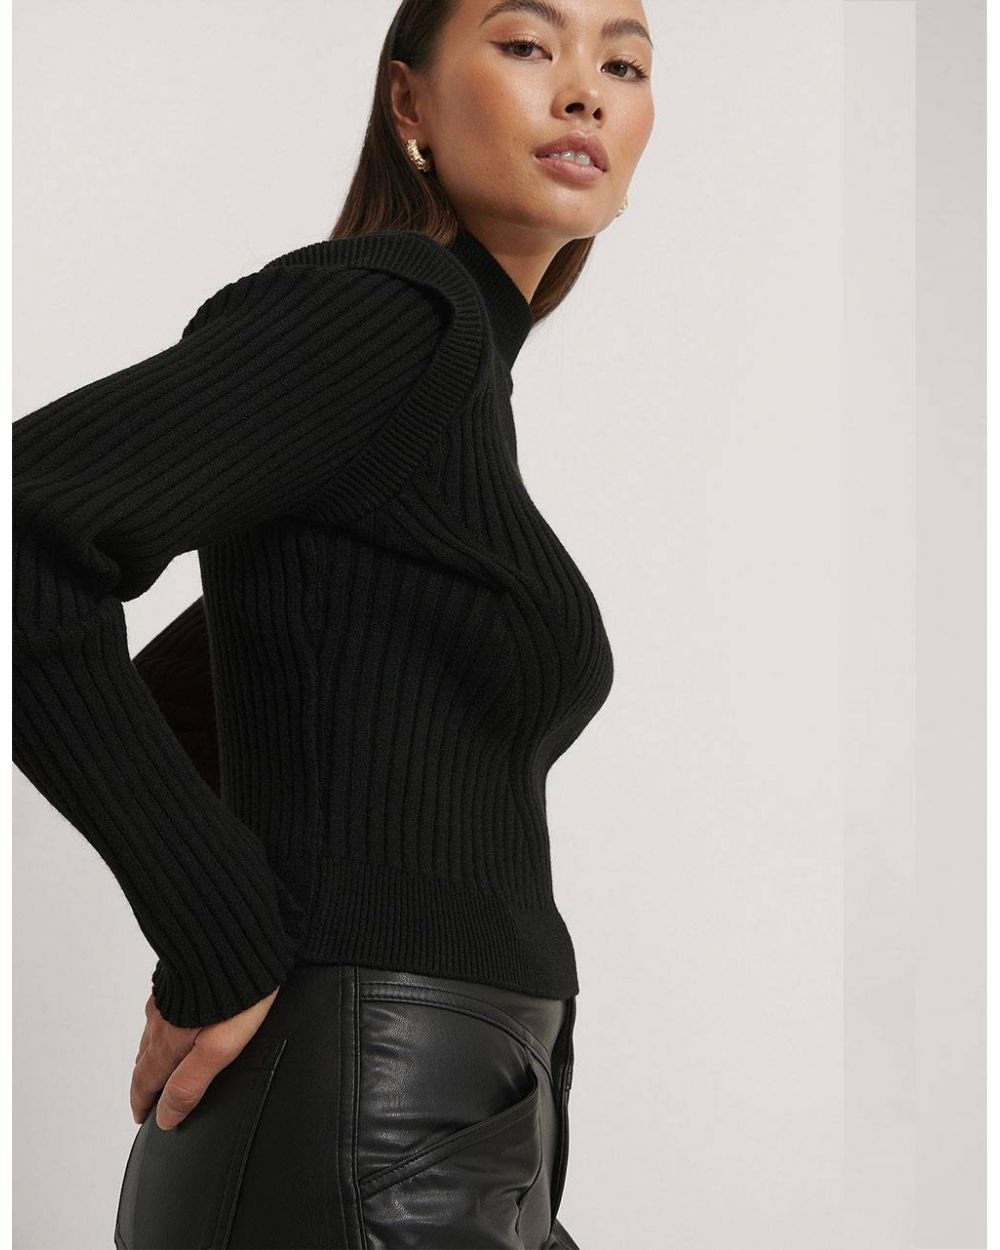 NA-KD Marked Shoulders Knitted Sweater - black NA-KD Sweater 53,28€